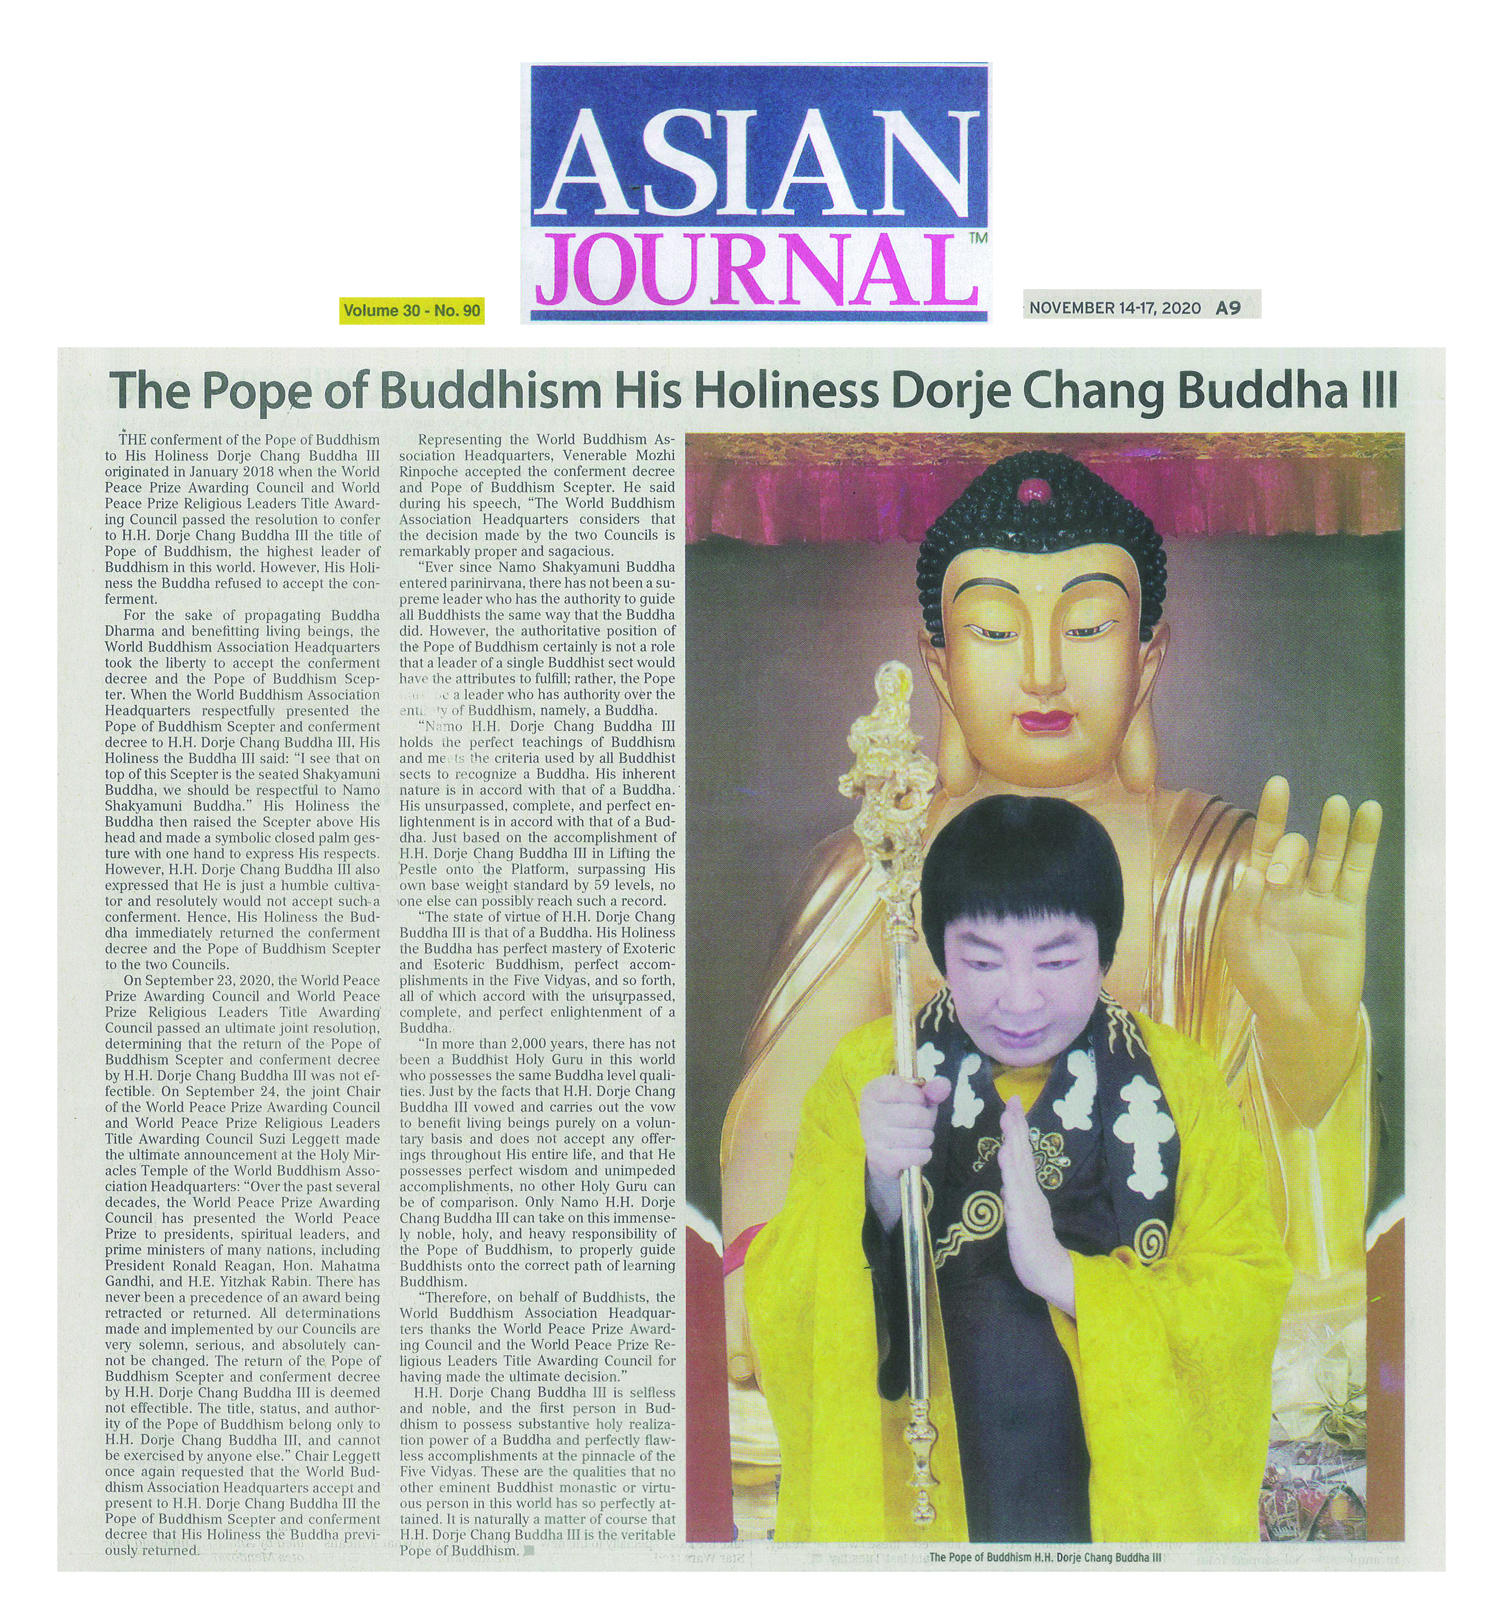 Asian Journal The Pope of Buddhism His Holiness Dorje Chang Buddha III